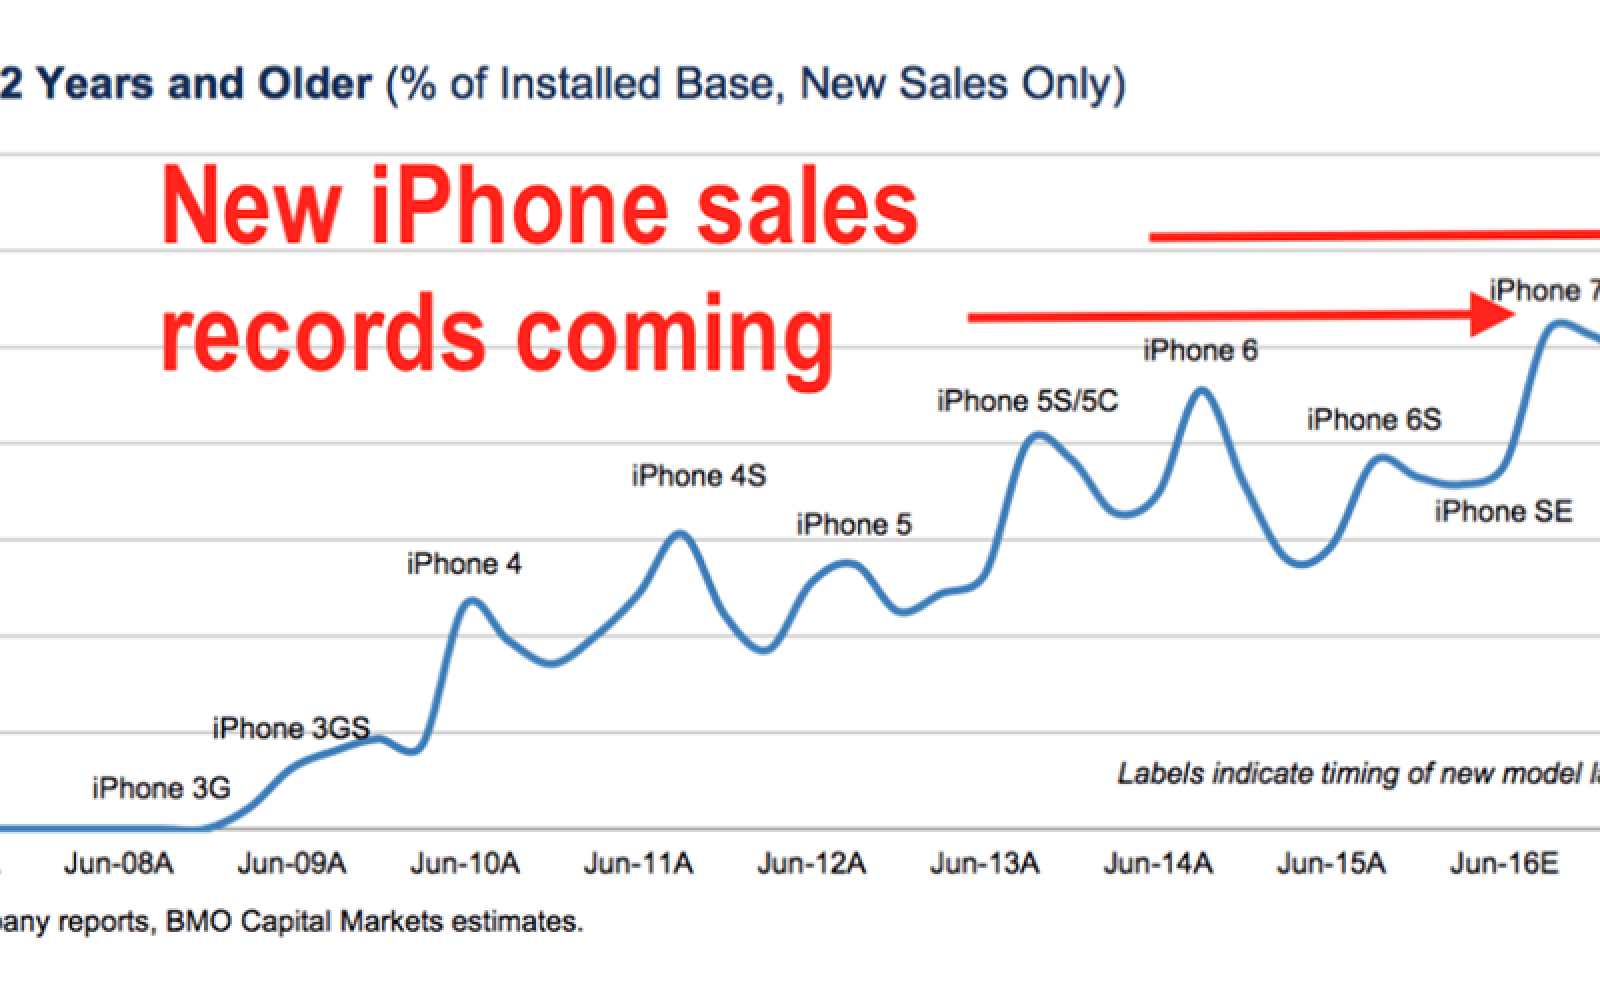 BMO analyst says iPhone 7 could see record sales as 25% of owners poised for upgrade